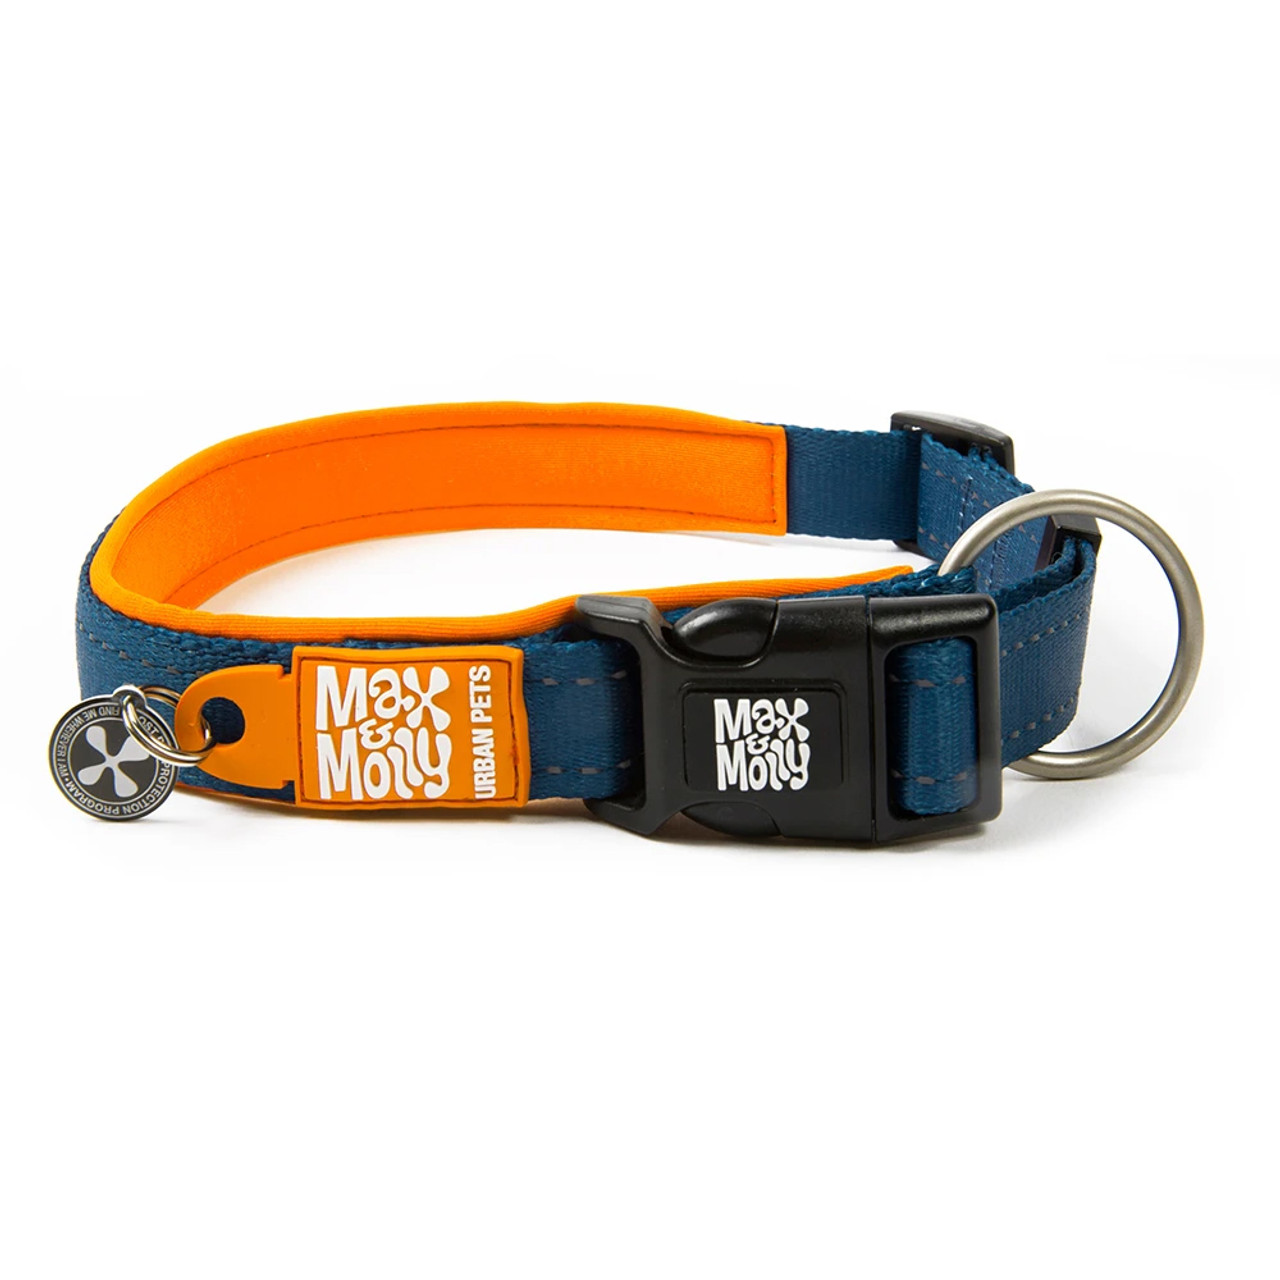 Max & Molly Smart ID Matrix Orange Dog Collar